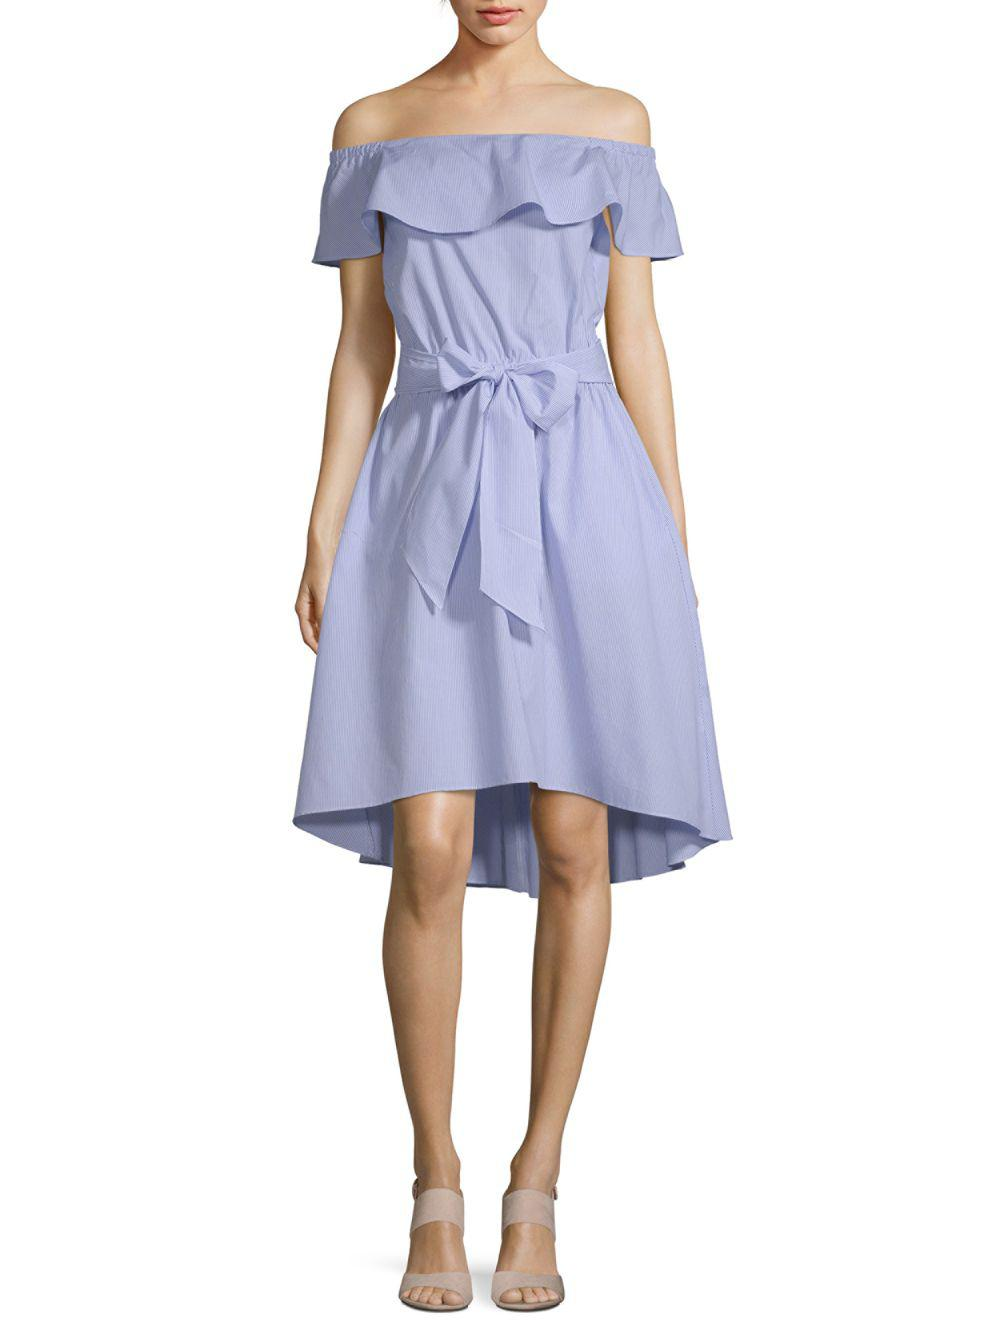 Lyst - Saks Fifth Avenue Ruffle Off-the-shoulder Dress in Blue